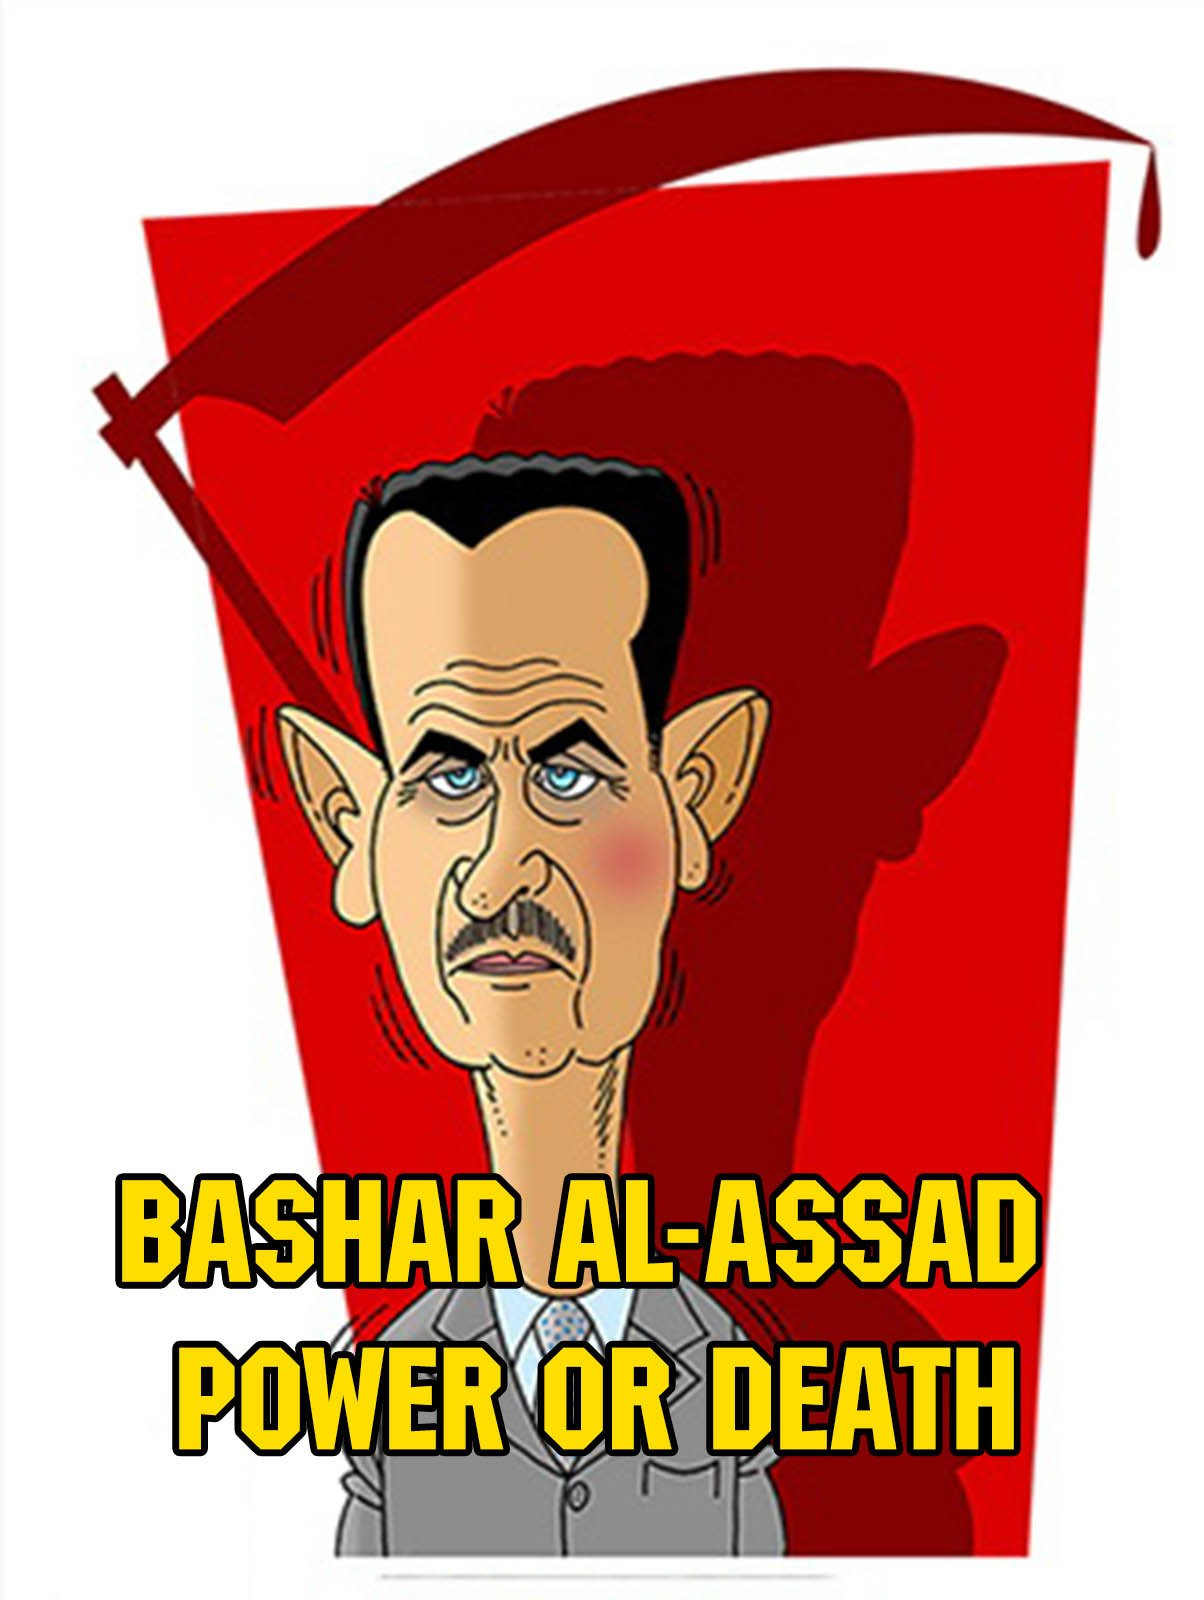 Bashar al-Assad power or death